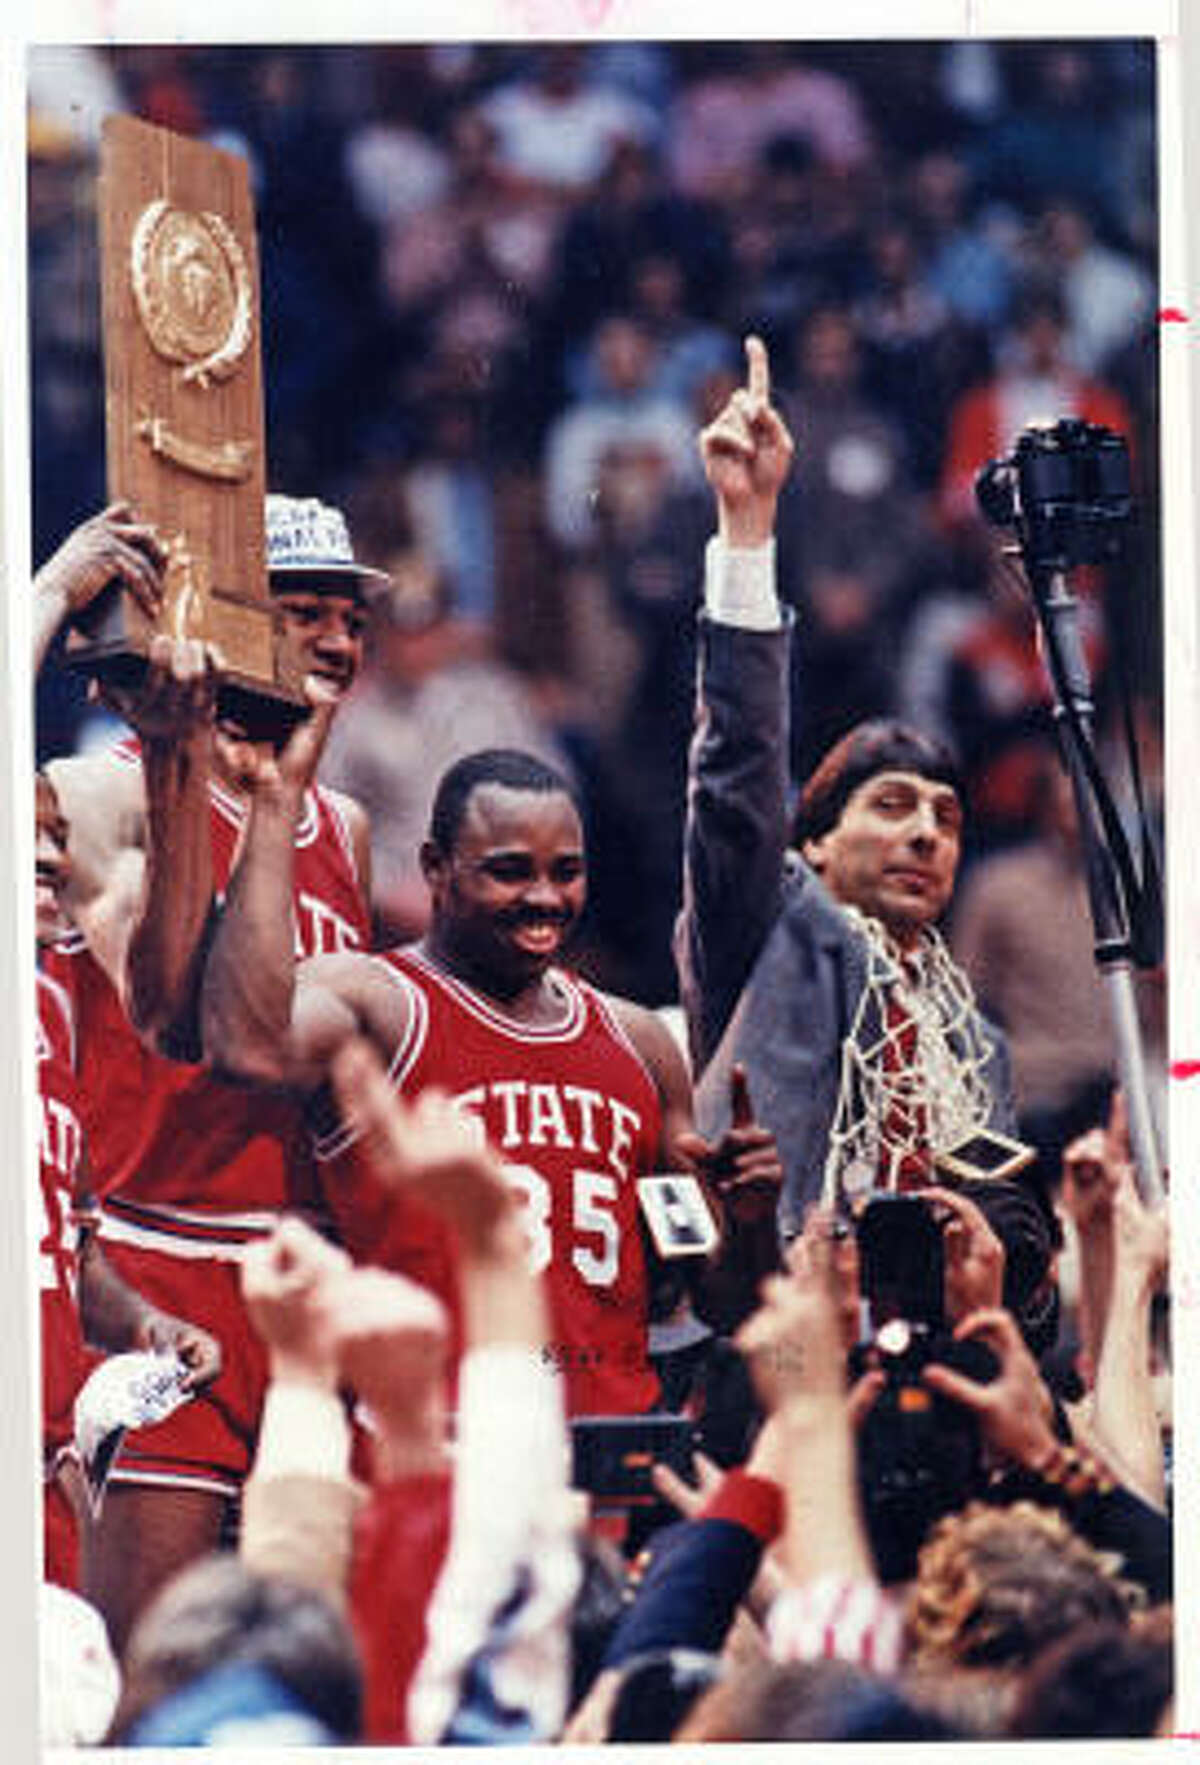 Jim Valvano coach of North Carolina State University celebrates a win over the university of Houston for the 1983 NCAA championship. His story is the focus of a TV movie airing tonight